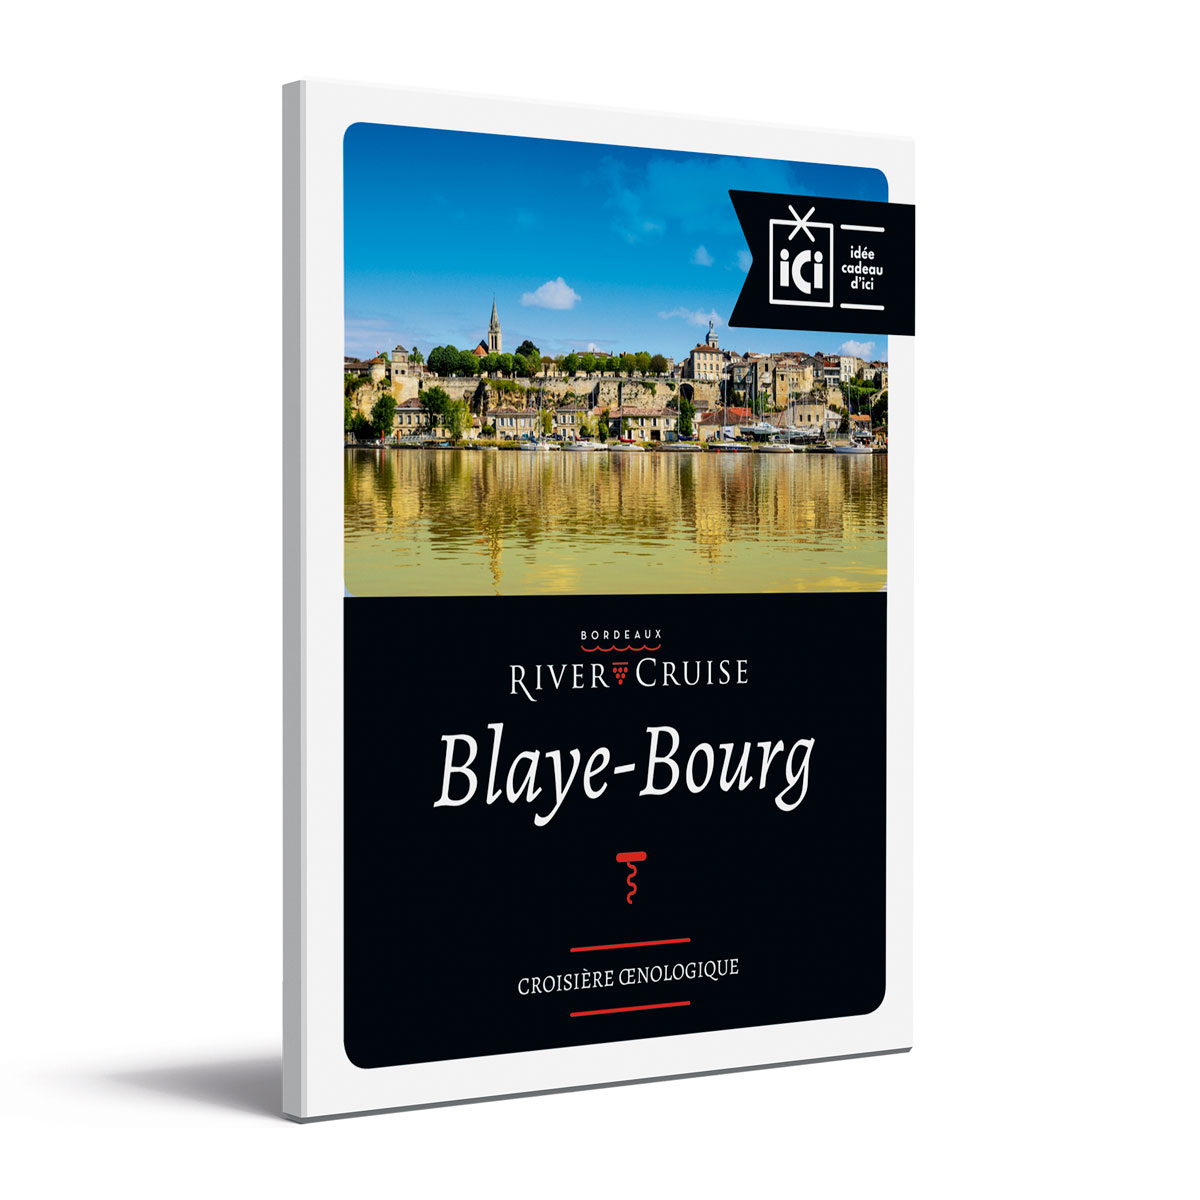 Coffret Blaye-Bourg Bordeaux River Cruise recto ombre